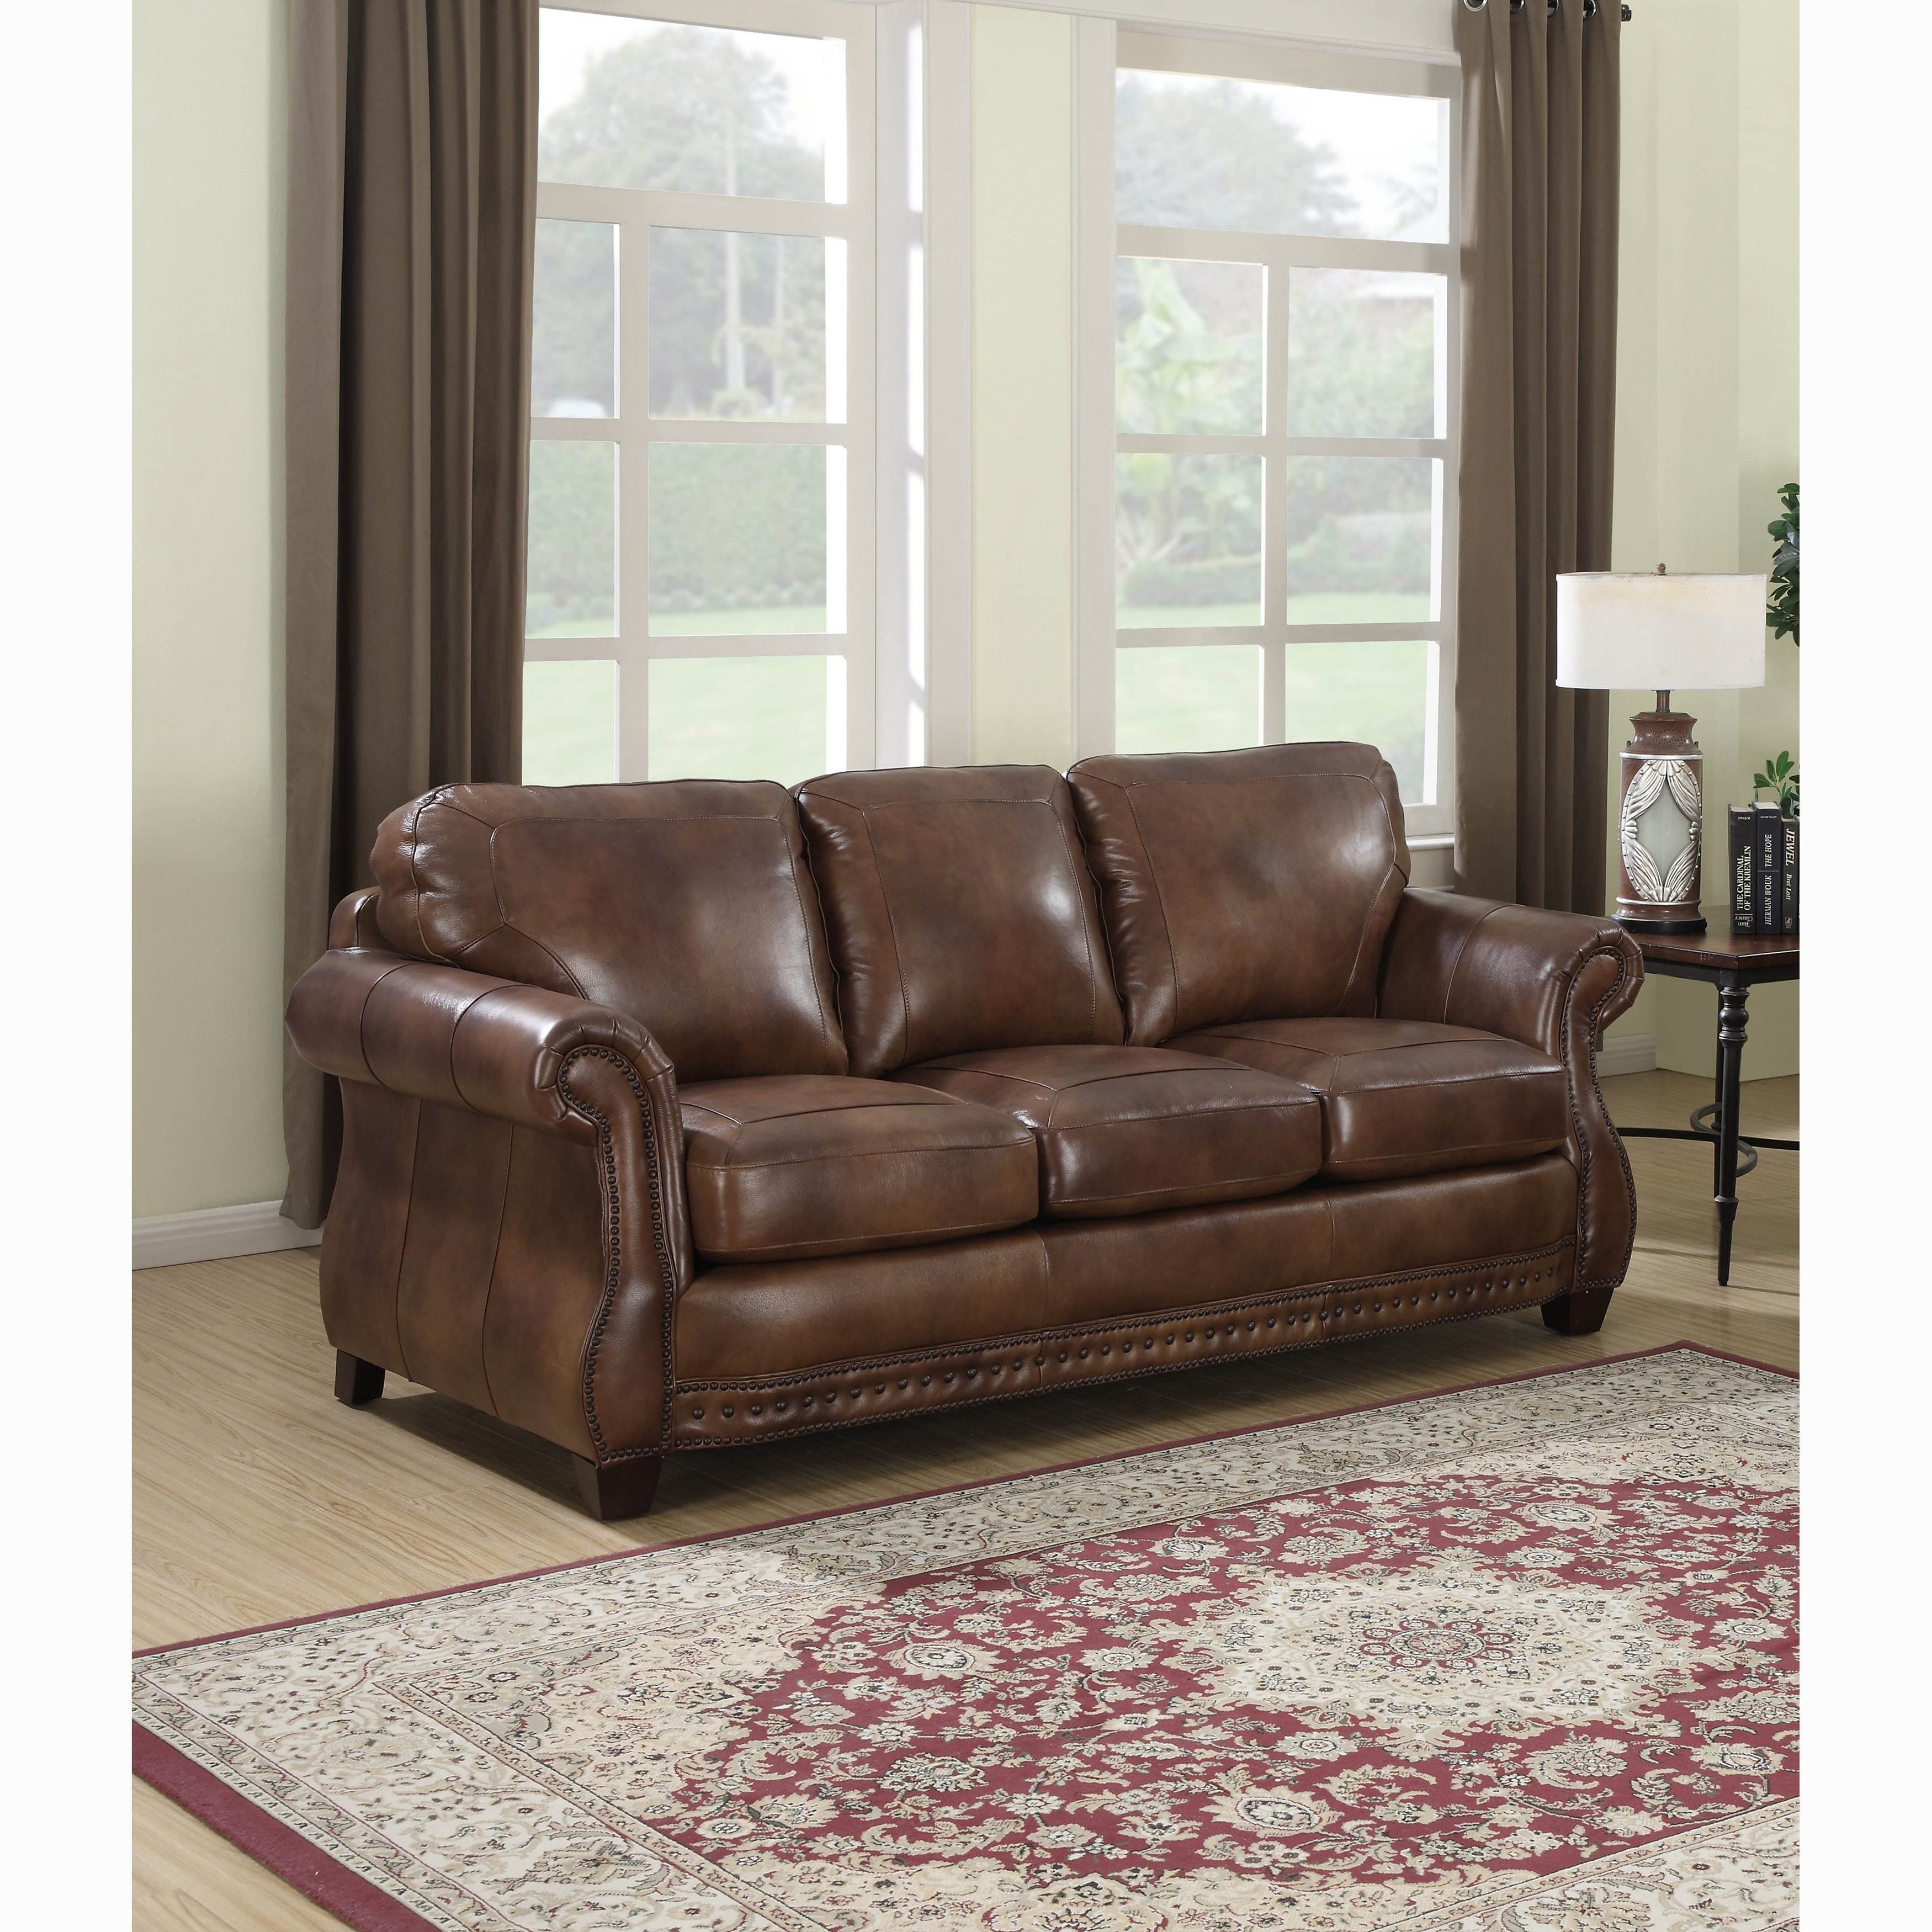 Sterling Cognac Brown Premium Top Grain Italian Leather Sofa